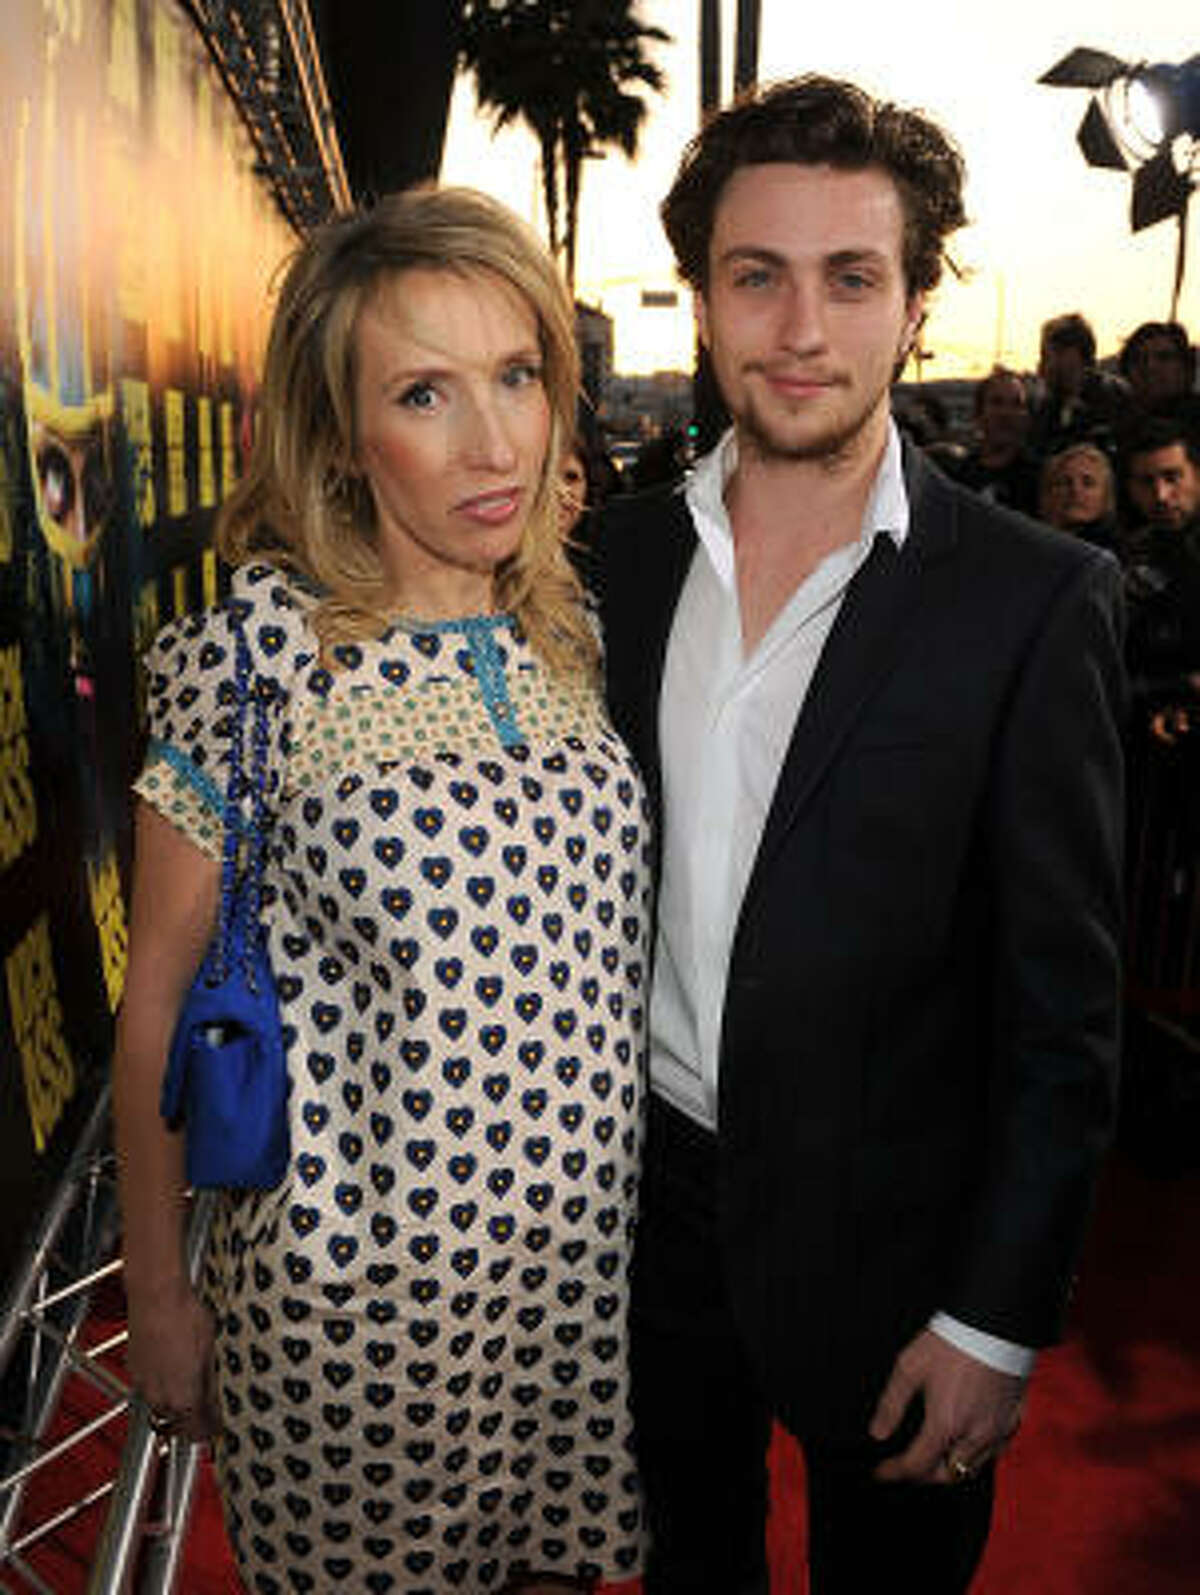 Actor Aaron Johnson, 21, became known for his role as the title character in the comic book movie Kick-Ass. He also gained notoriety for his relationship with fiancee Sam Taylor Wood , 44. The couple has a daughter.